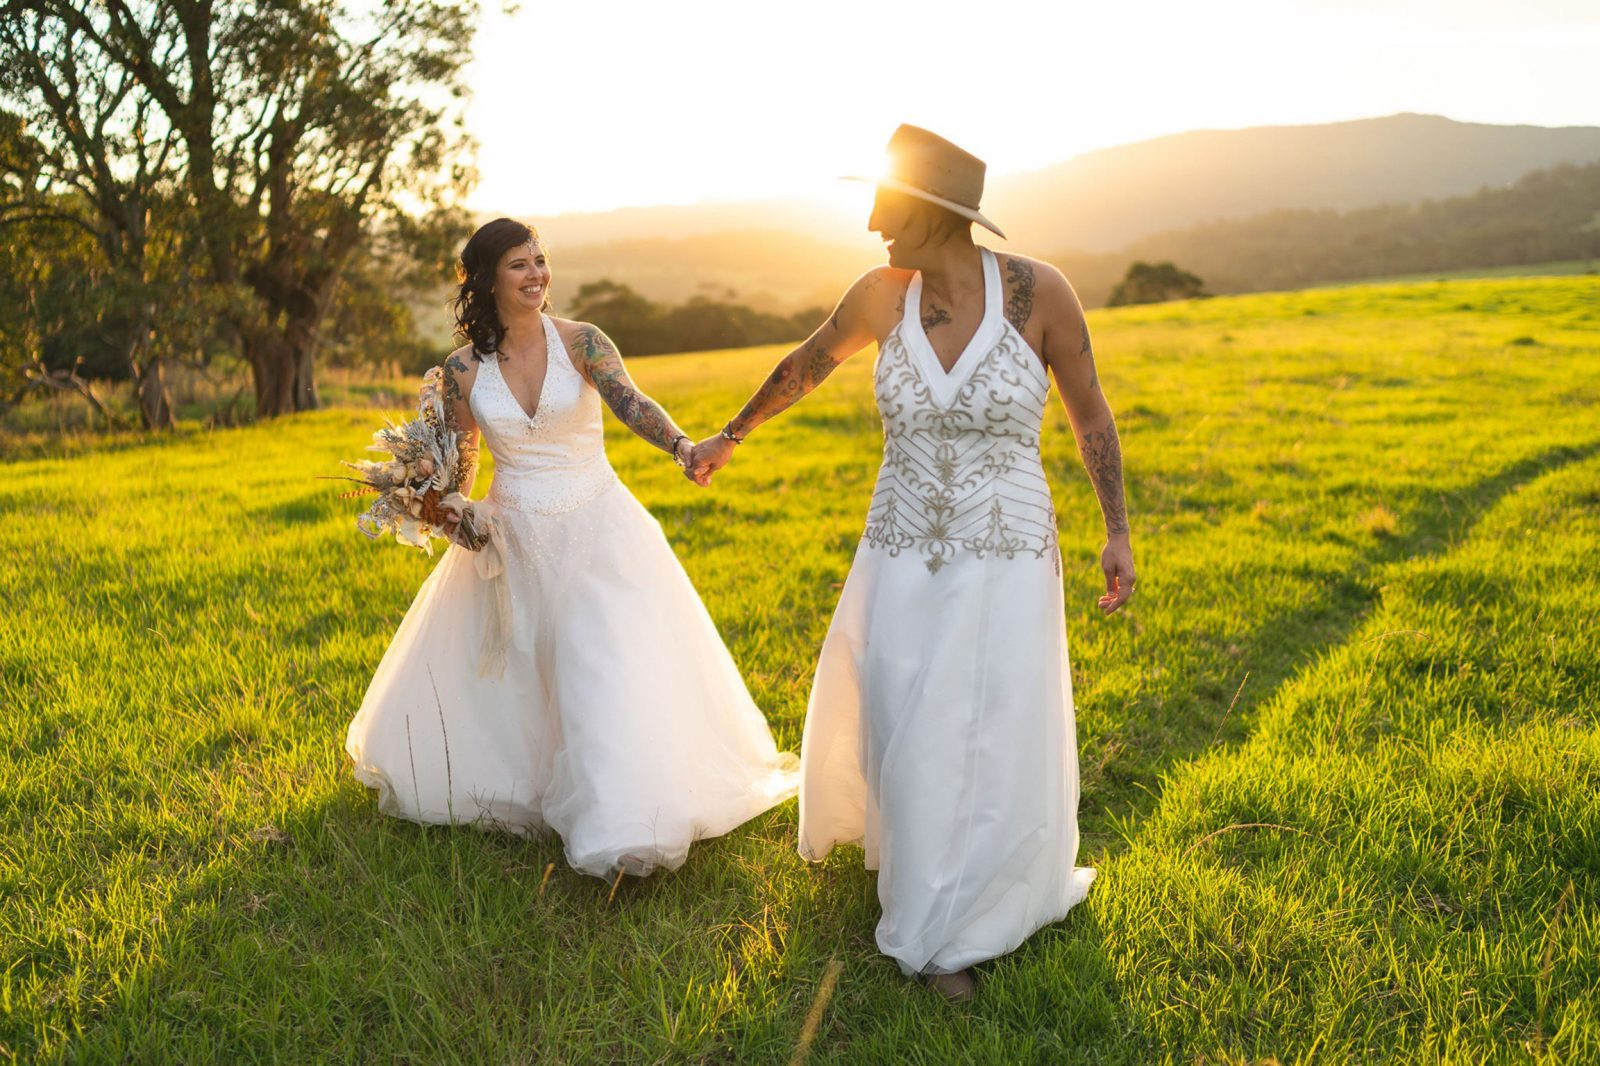 Two brides walk through a field at golden hour